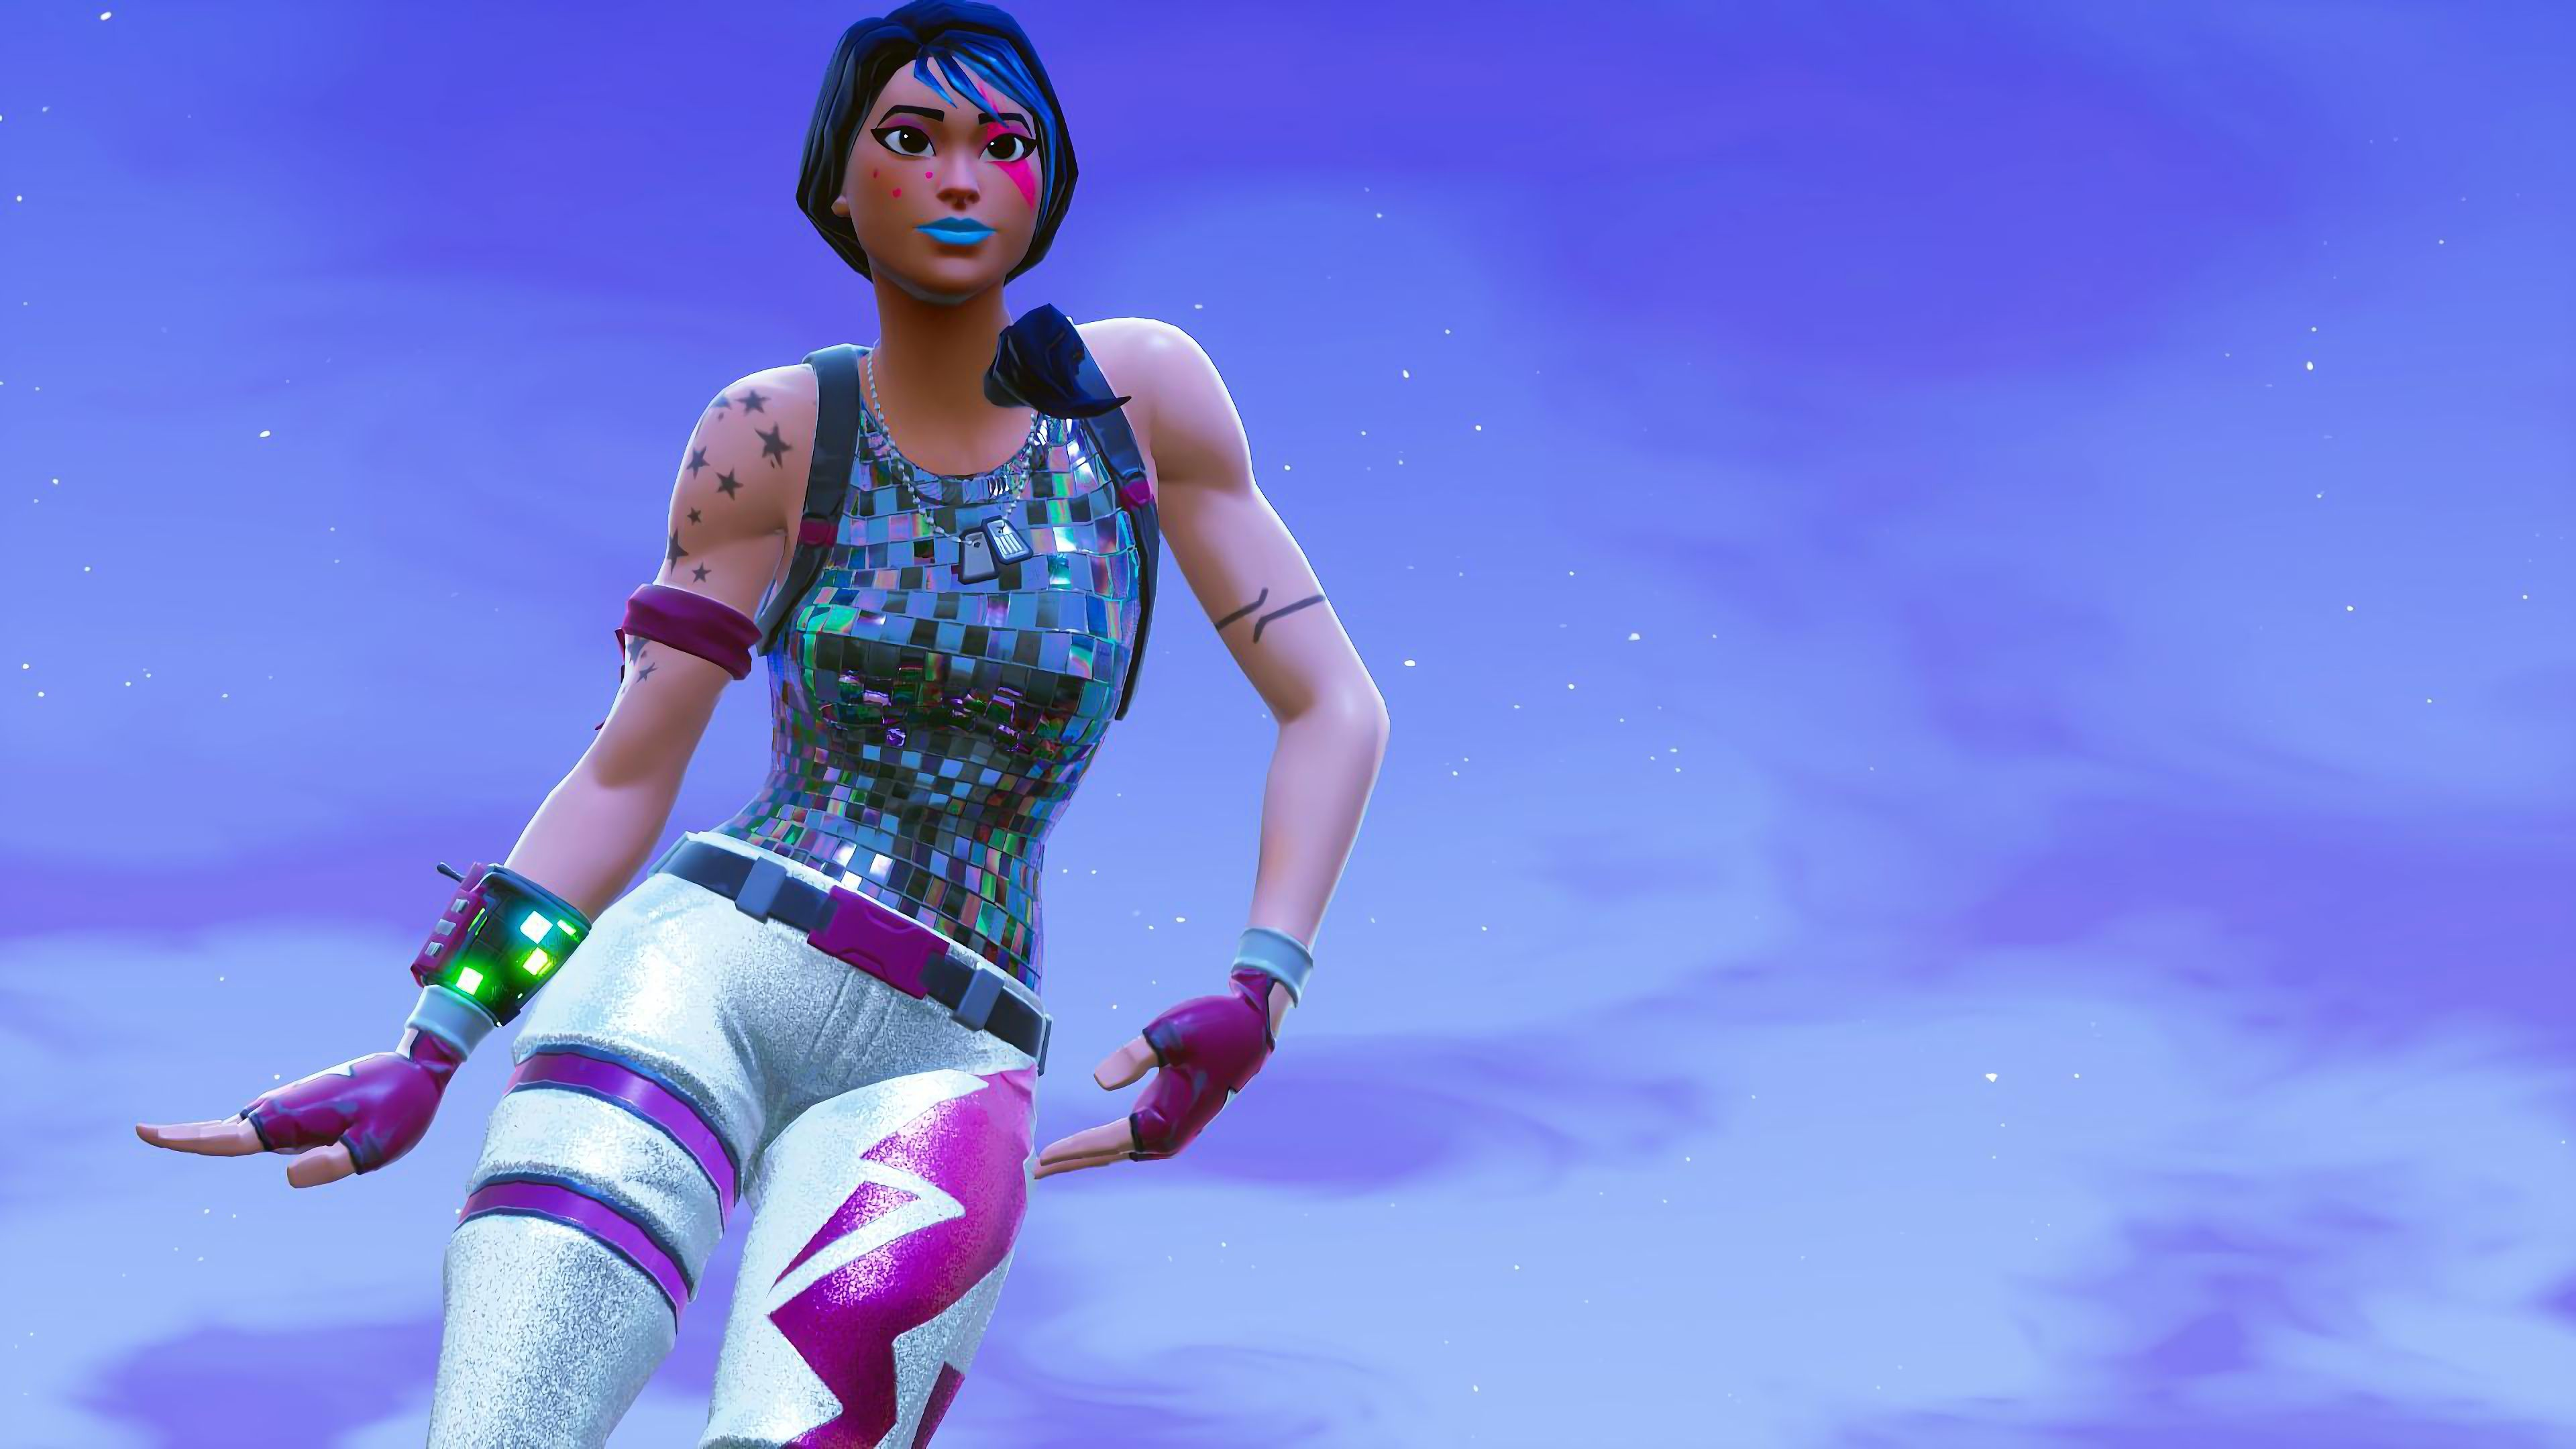 Sparkle Specialist Fortnite Wallpapers.